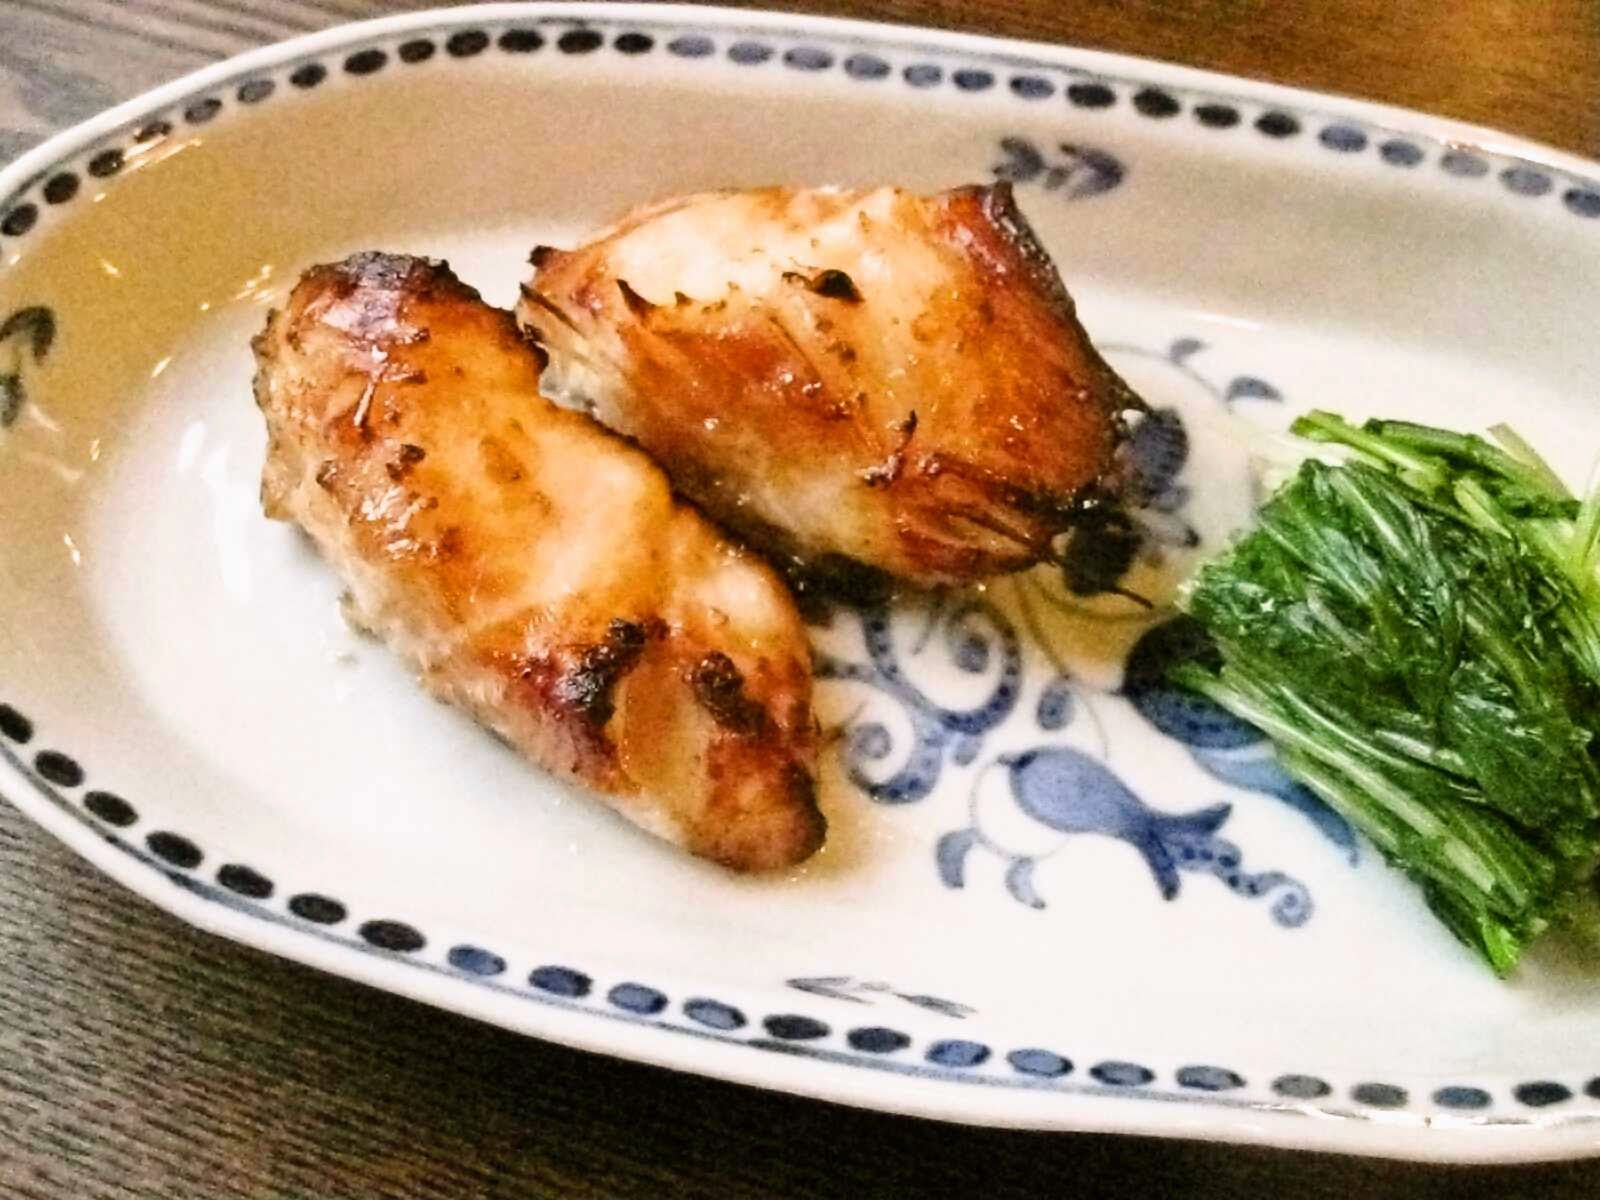 Recipes for TomGindara no shogajoyu-yaki / grilled black cod